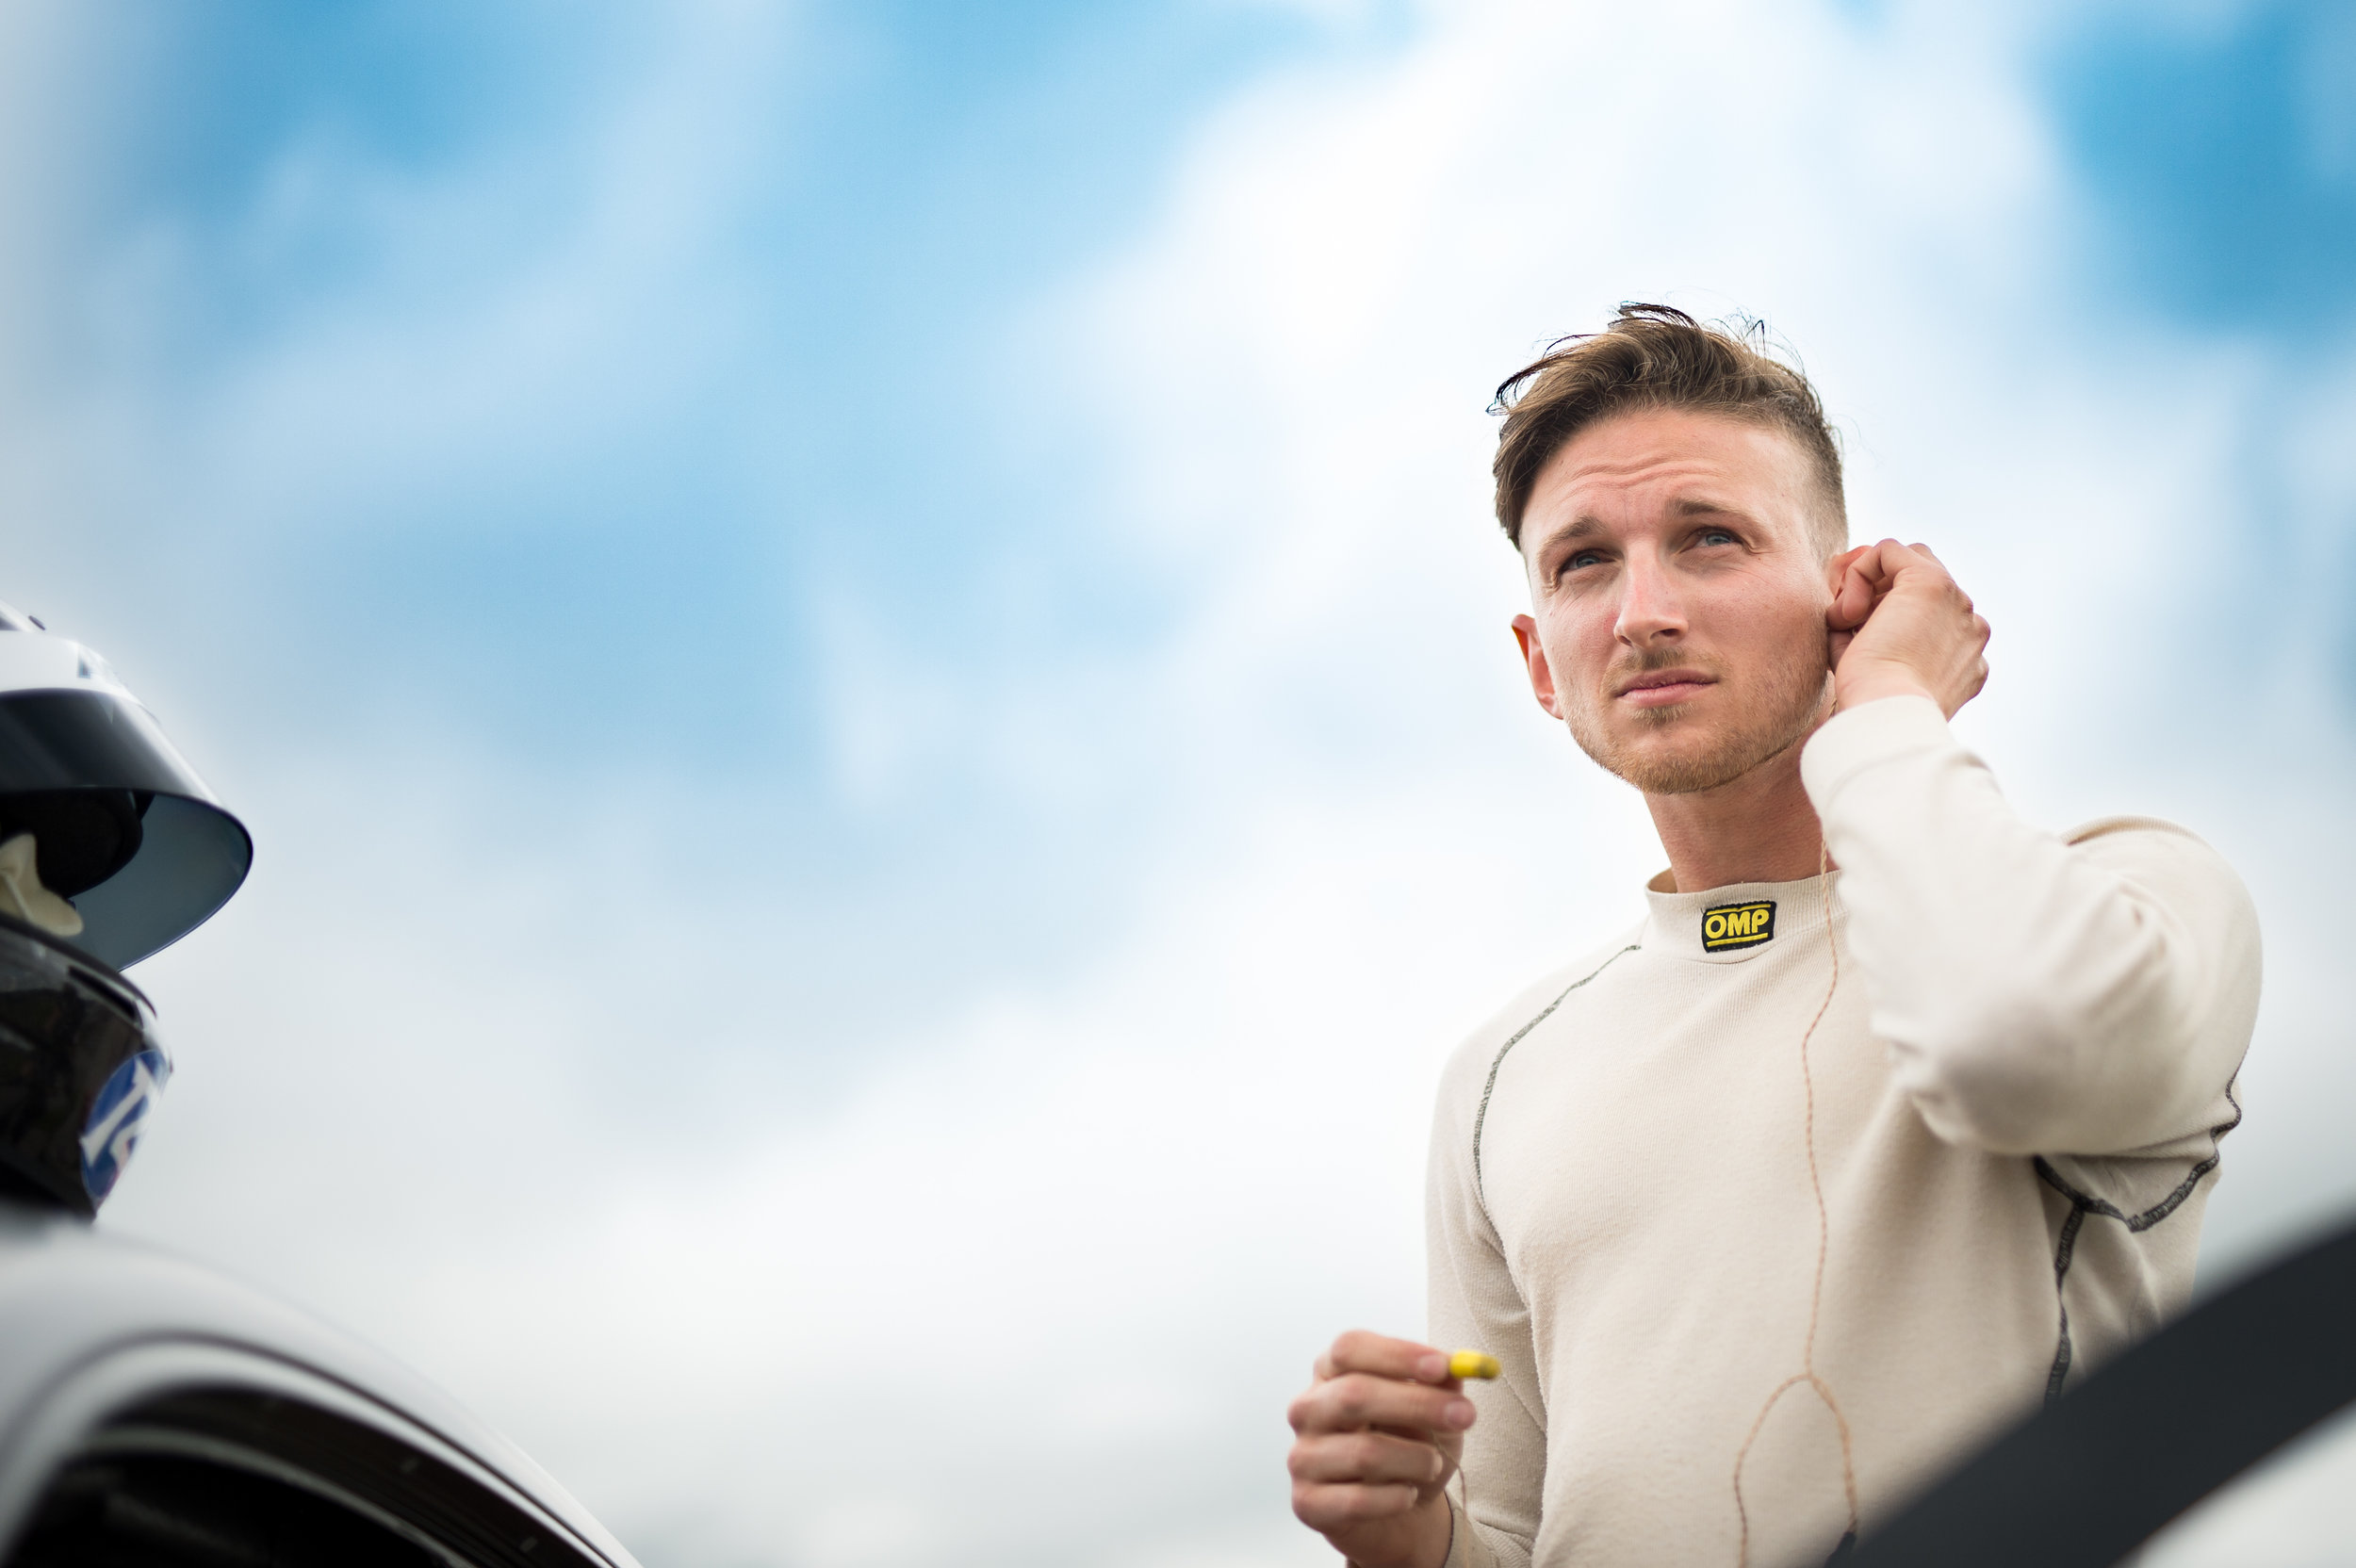 Who am I? - I'm a Canadian racecar driver from Edmonton, AB. I've raced a variety of cars from formula cars, GT cars, stock cars, touring cars, and most recently: electric cars.In 2018, I competed in the Ultra 94 Porsche GT3 Cup Challenge Canada.I write shorter thoughts here.I write longer form text here.Currently, I'm most active posting photos here.